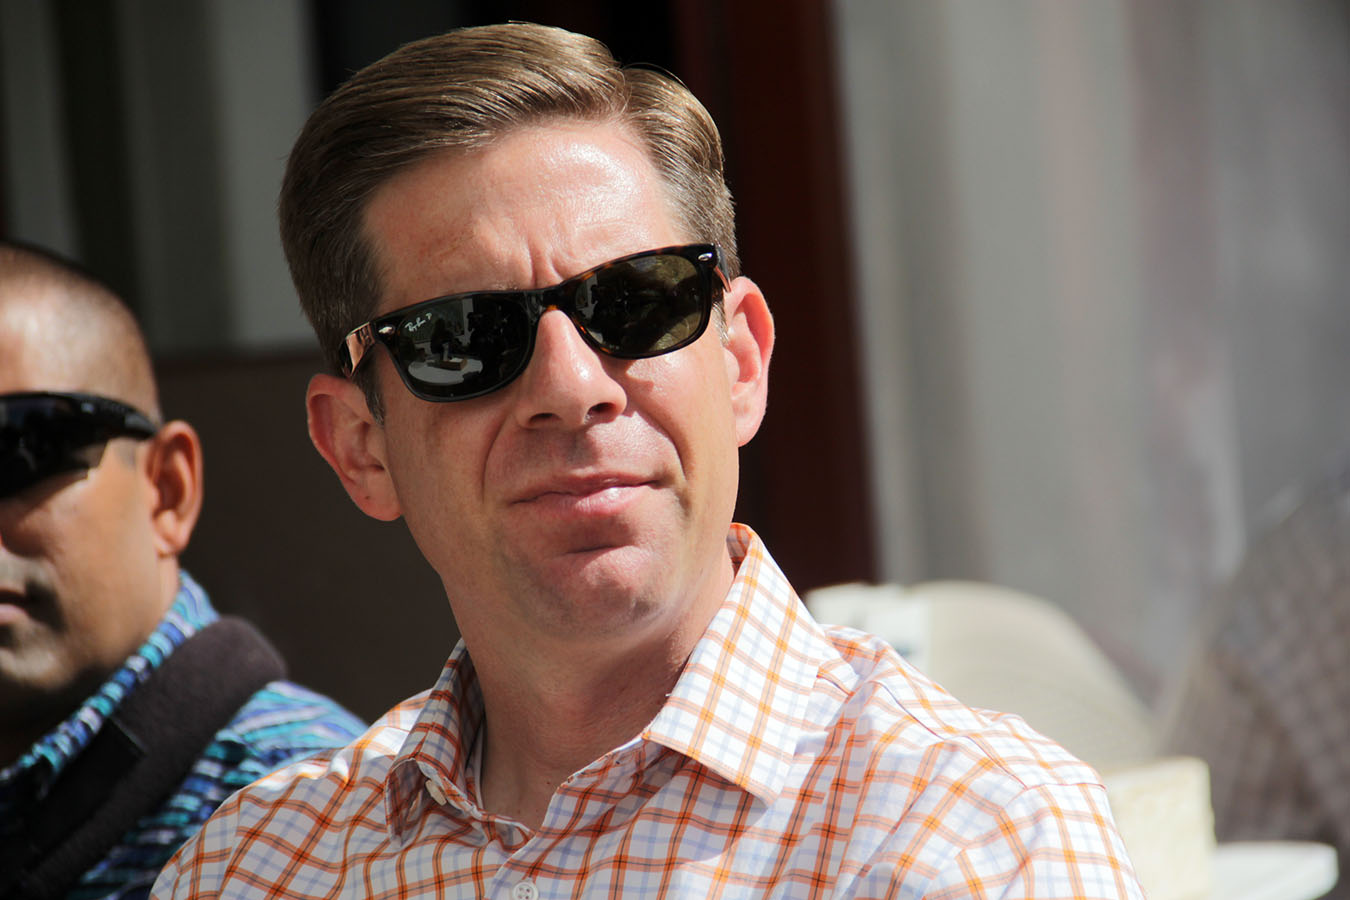 """Rep. Mike Levin listens to some constituents of California's 49th Congressional District at Café Calypso in San Clemente, where he held his """"Coffee with your Congressman"""" event on Wednesday, May 29. Photo: Shawn Raymundo"""